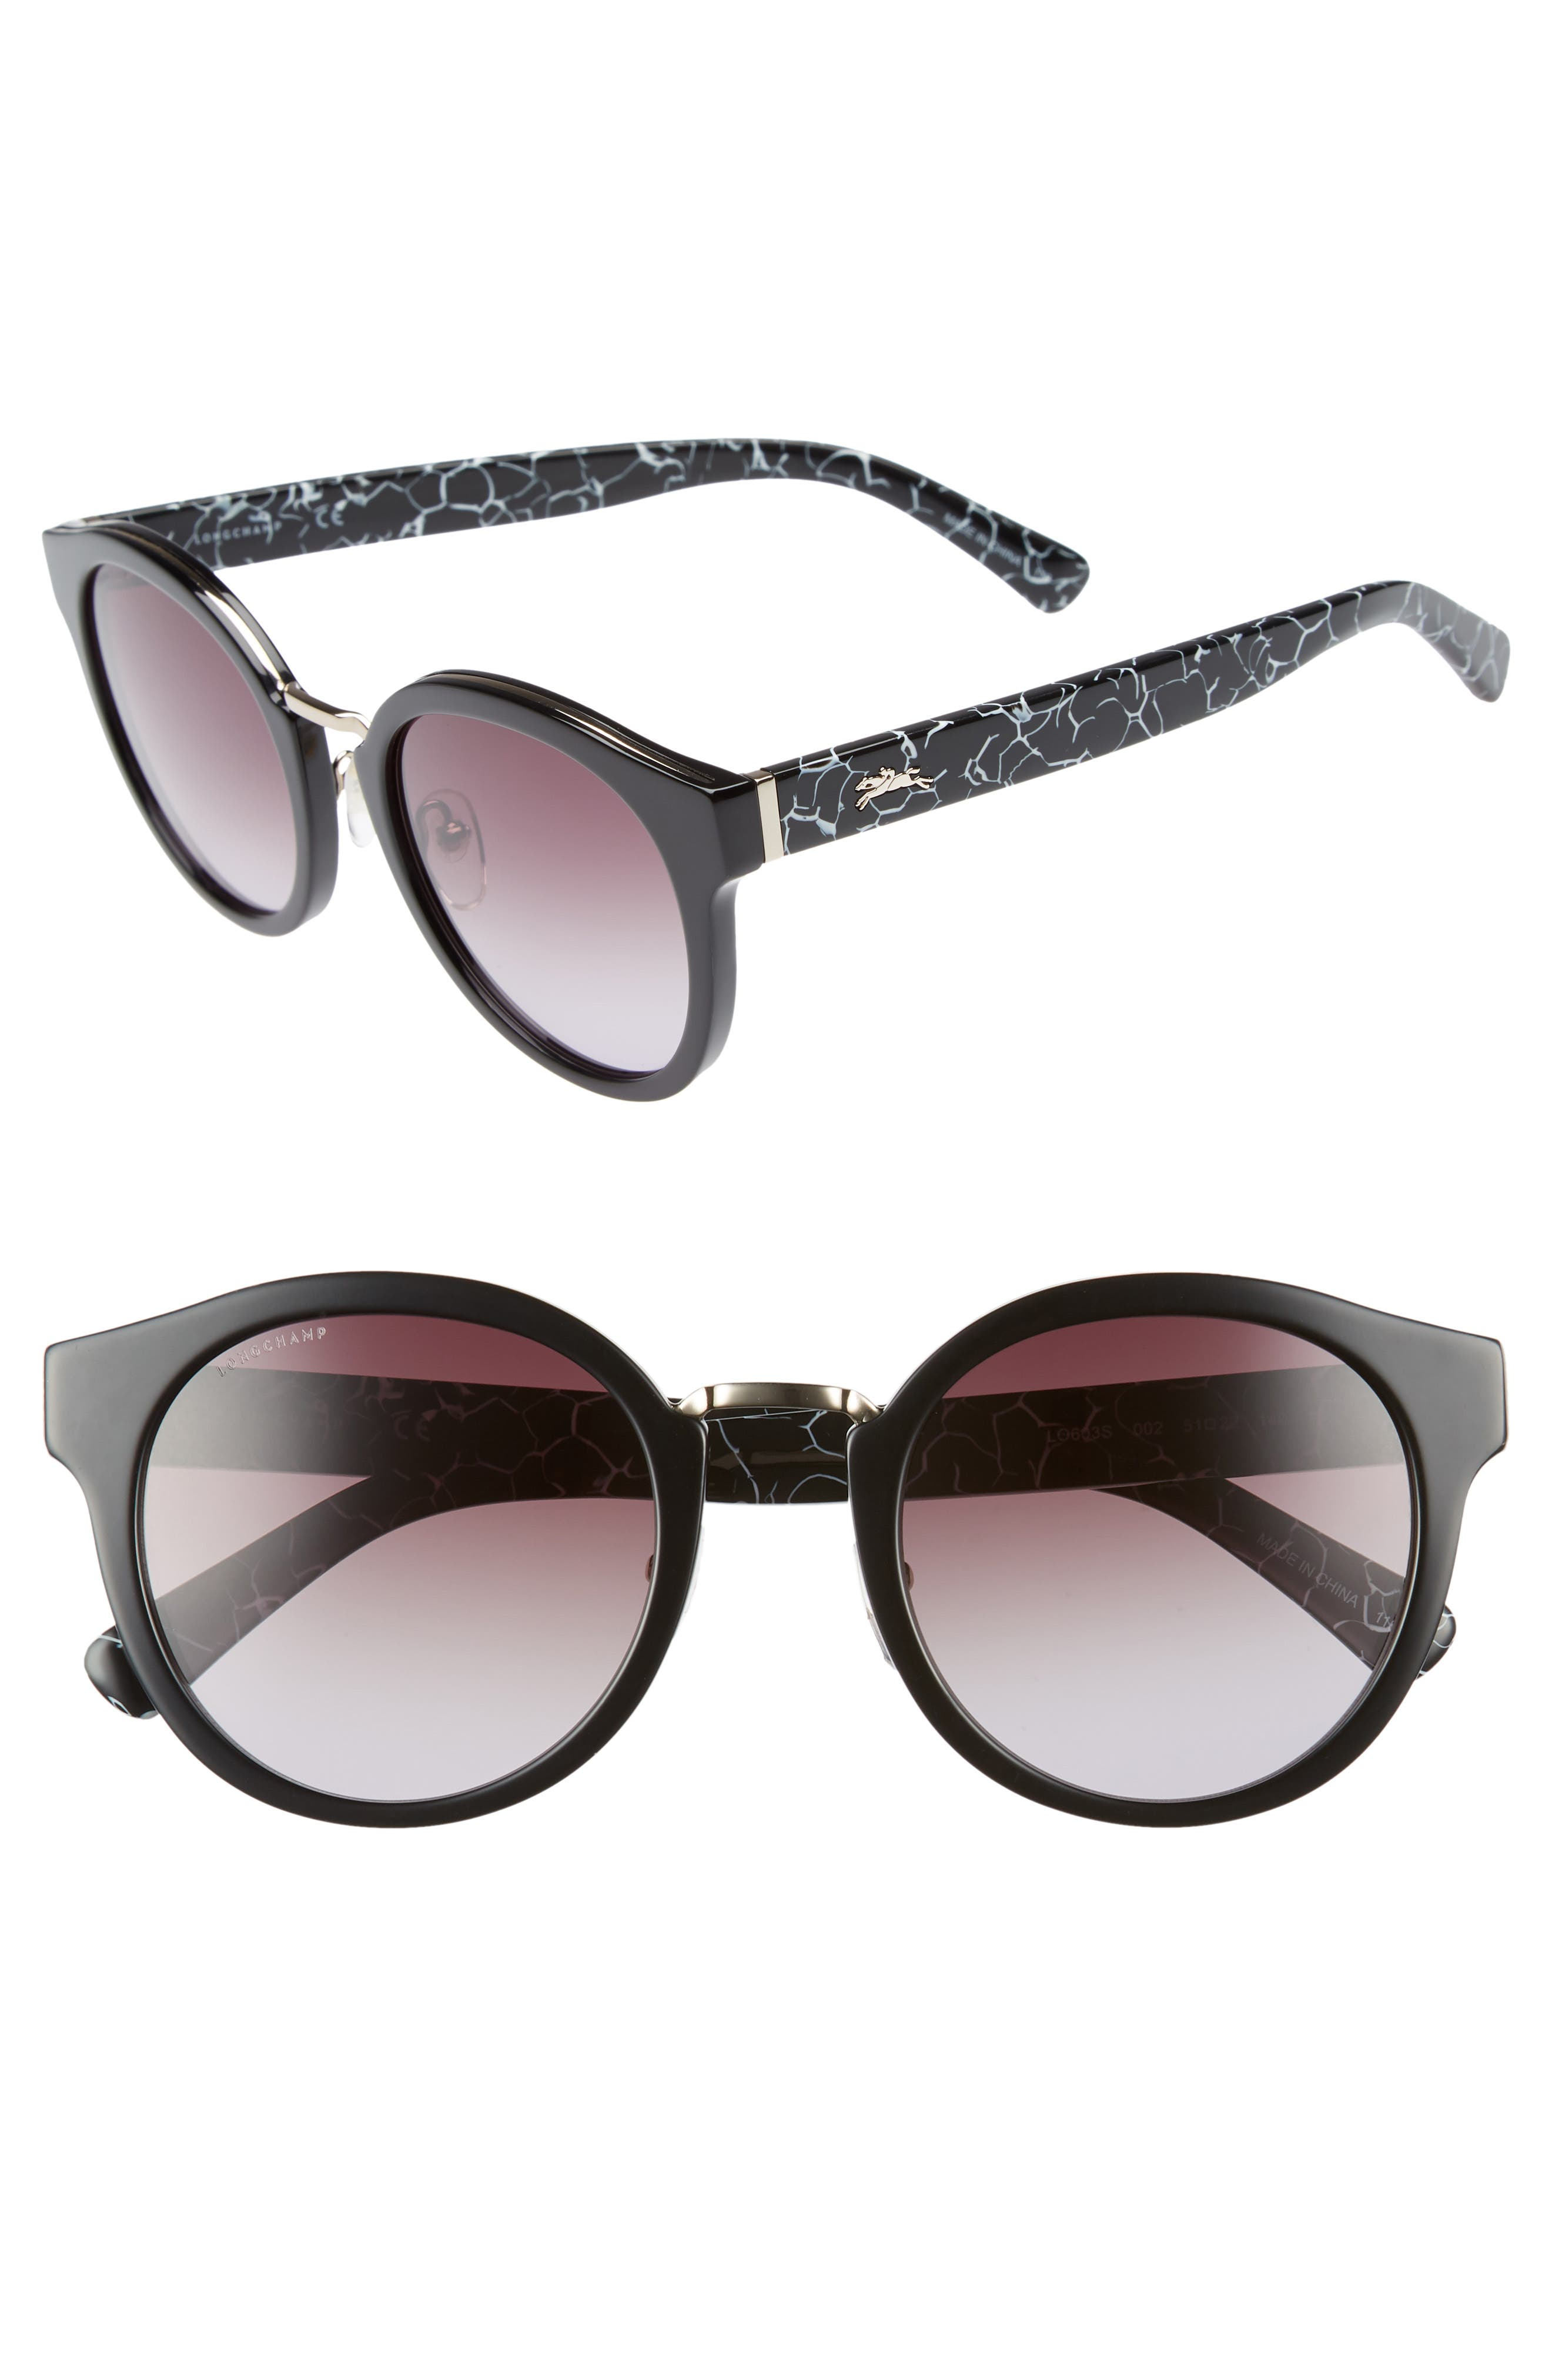 51mm Round Sunglasses,                             Main thumbnail 1, color,                             Marble Black